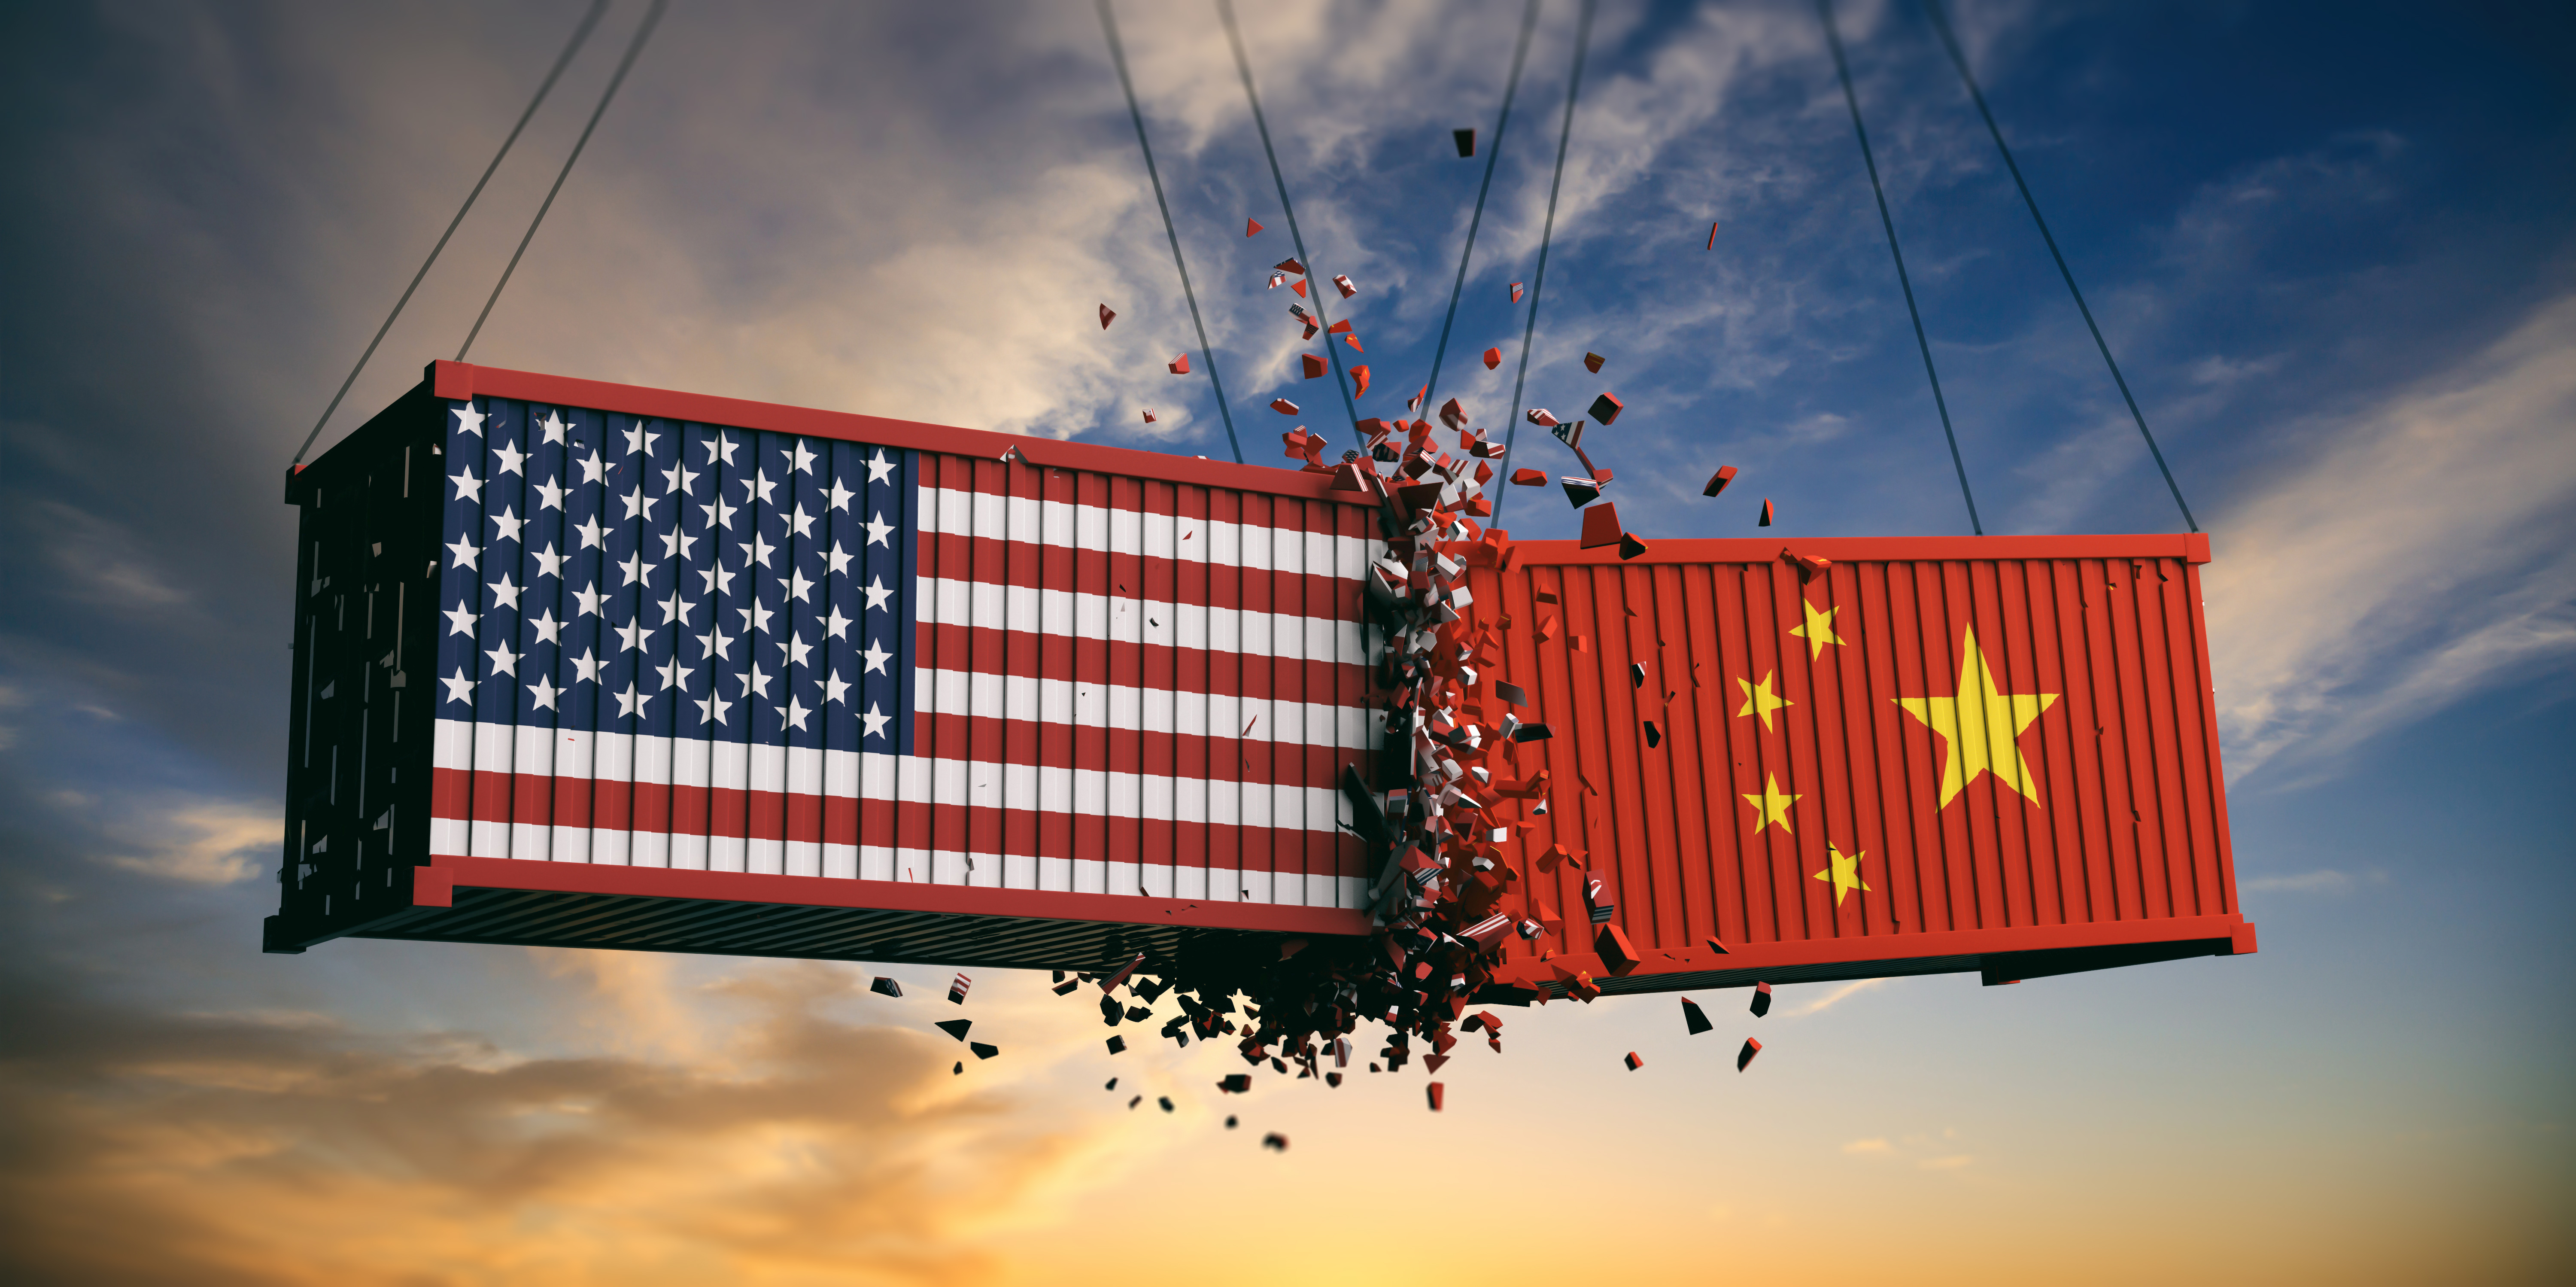 USA and China trade war. US of America and chinese flags crashed containers on sky at sunset background. 3d illustration (Shutterstock/rawf8)